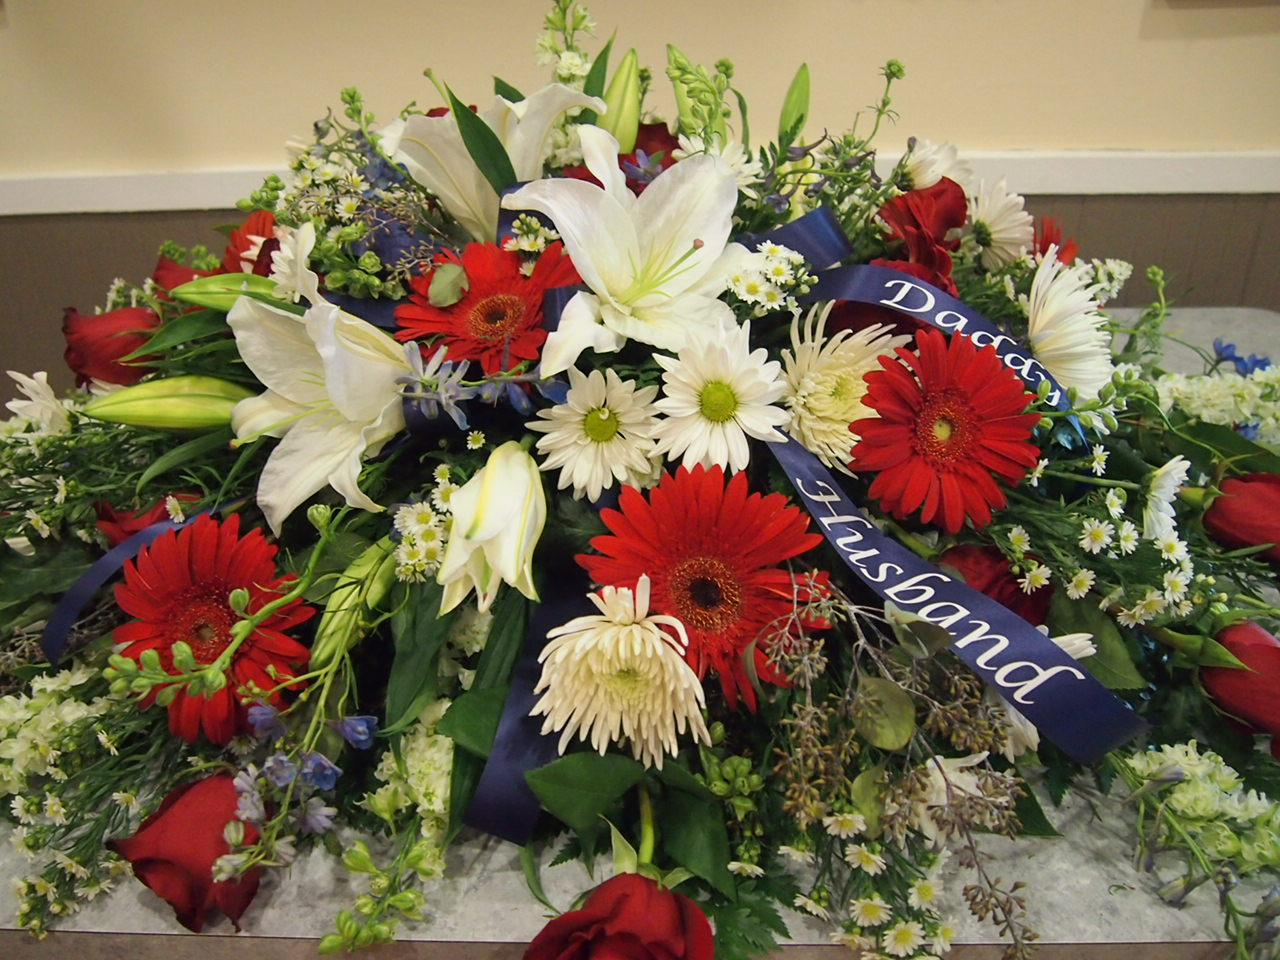 Robyns Floral and Design: Funeral Flowers